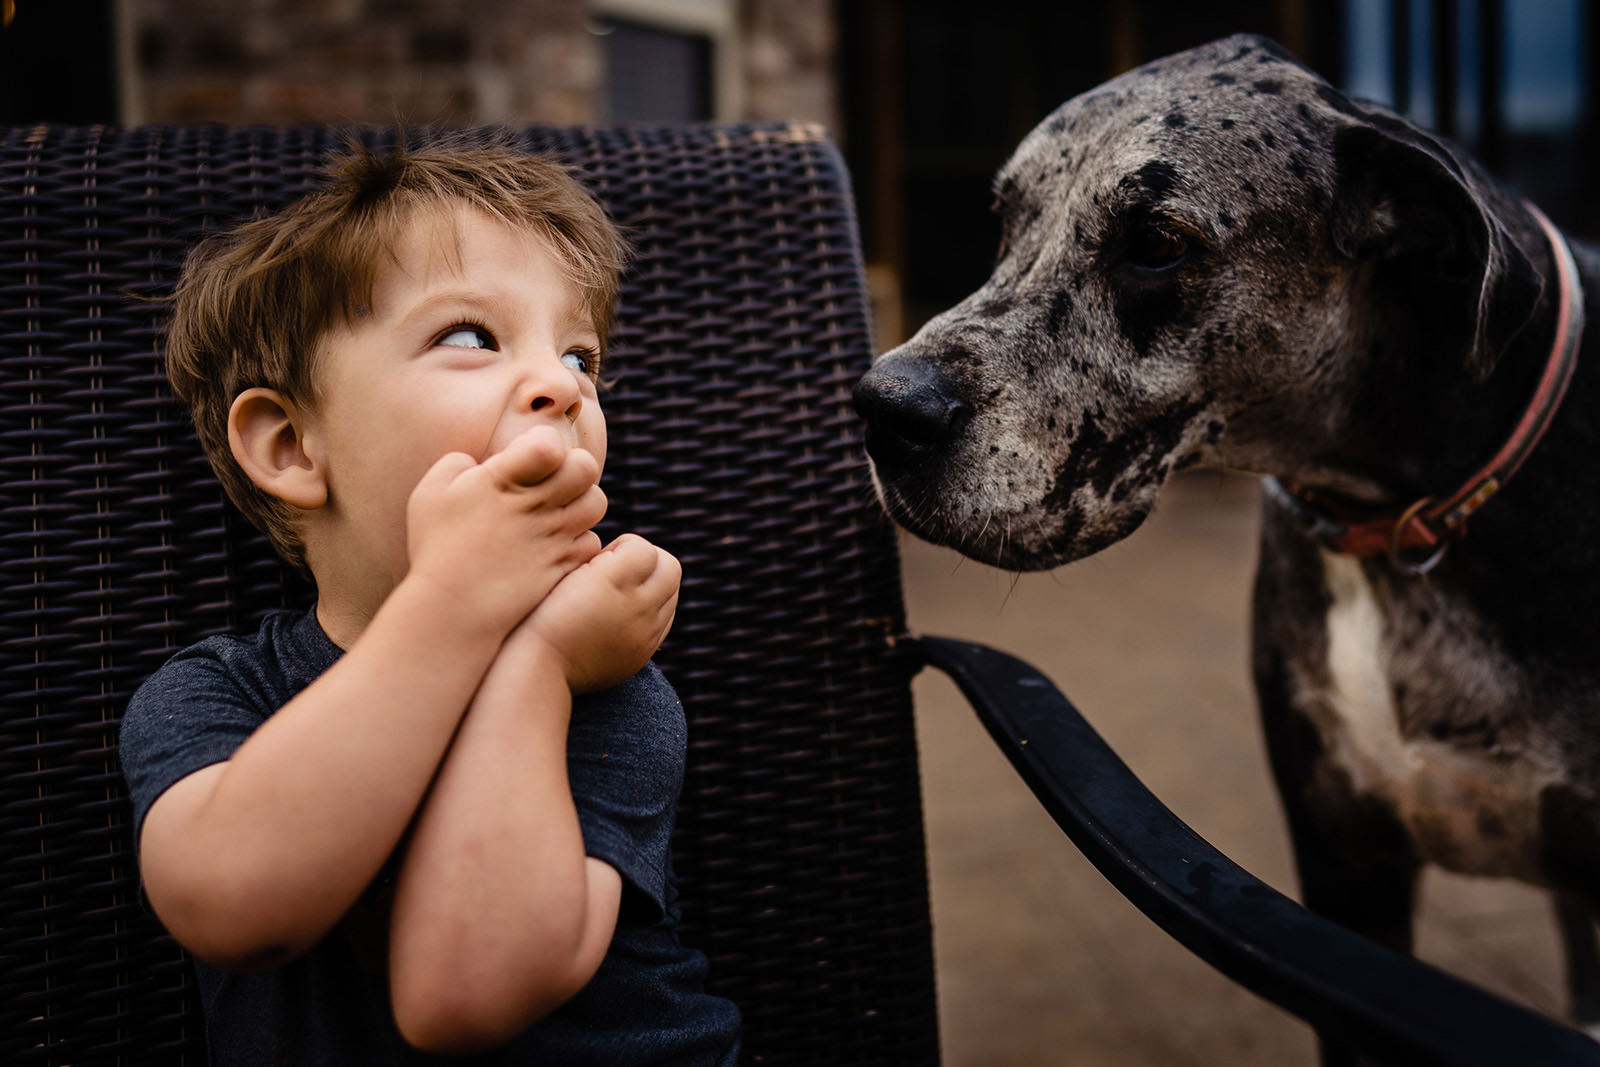 Little boy laughs at his dog during documentary photo session